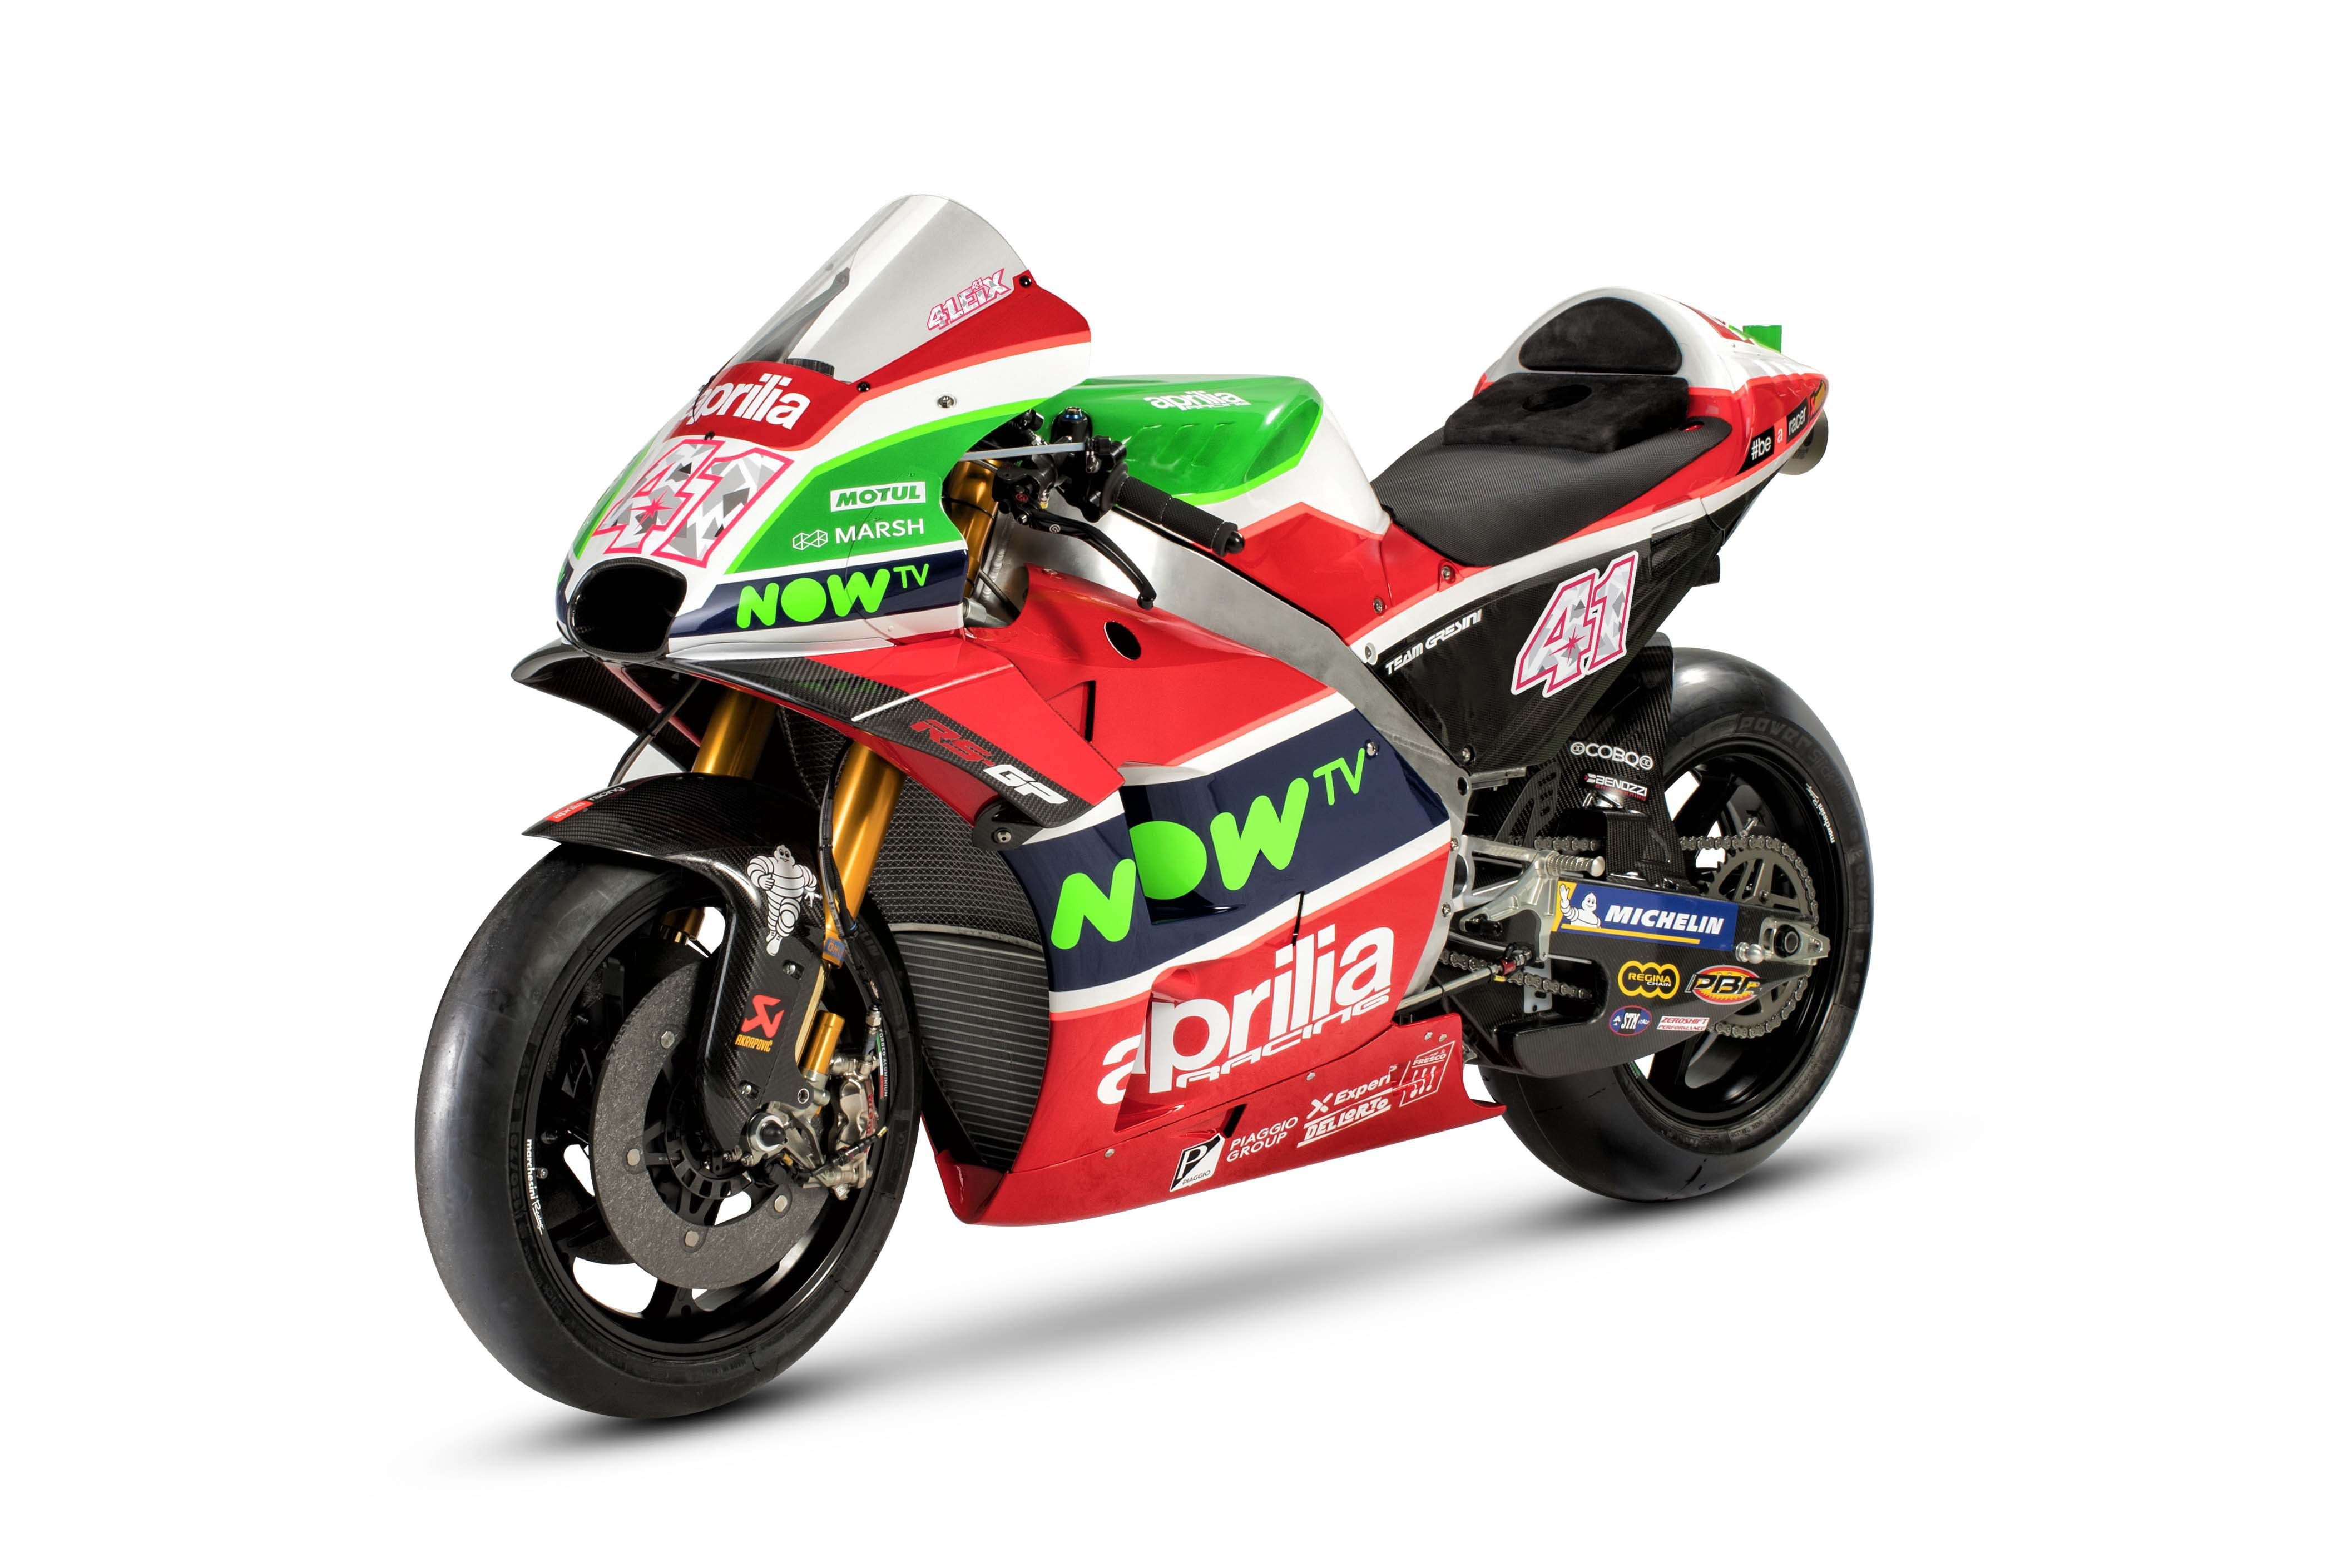 Actual 2018 Aprilia MotoGP bike not just livery  15ea8fcf2a1